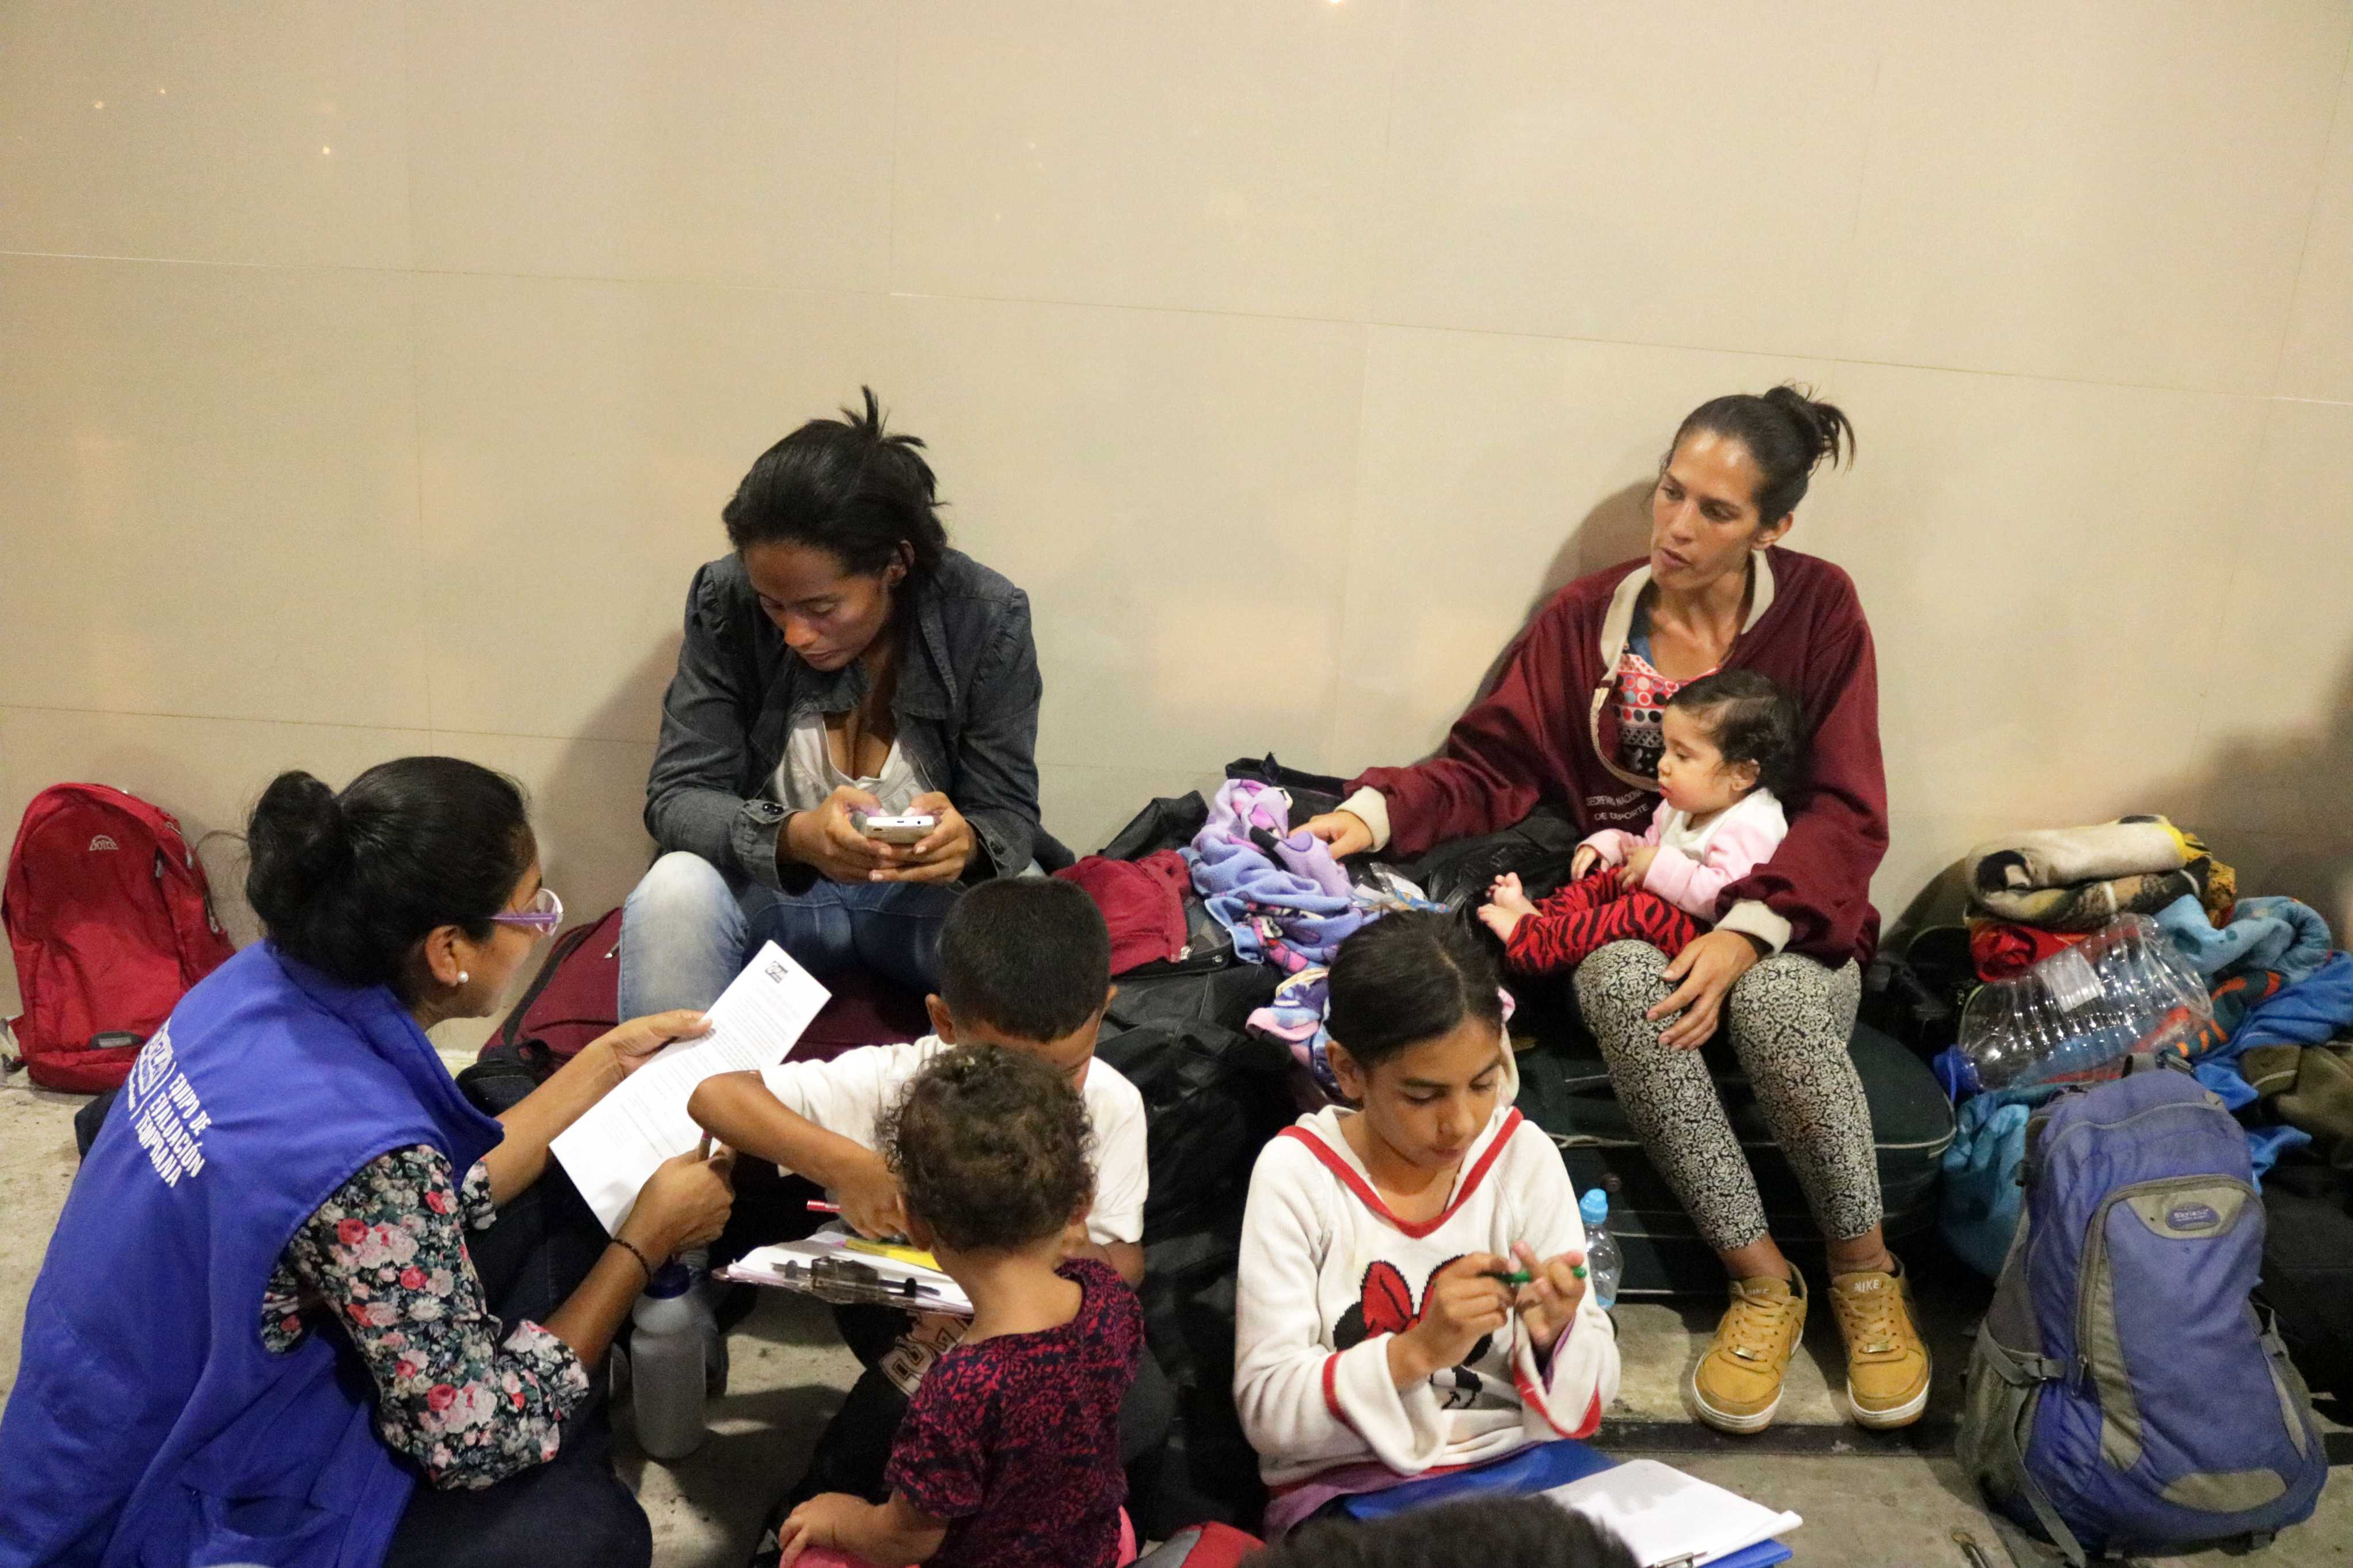 Mothers and children waiting at the border